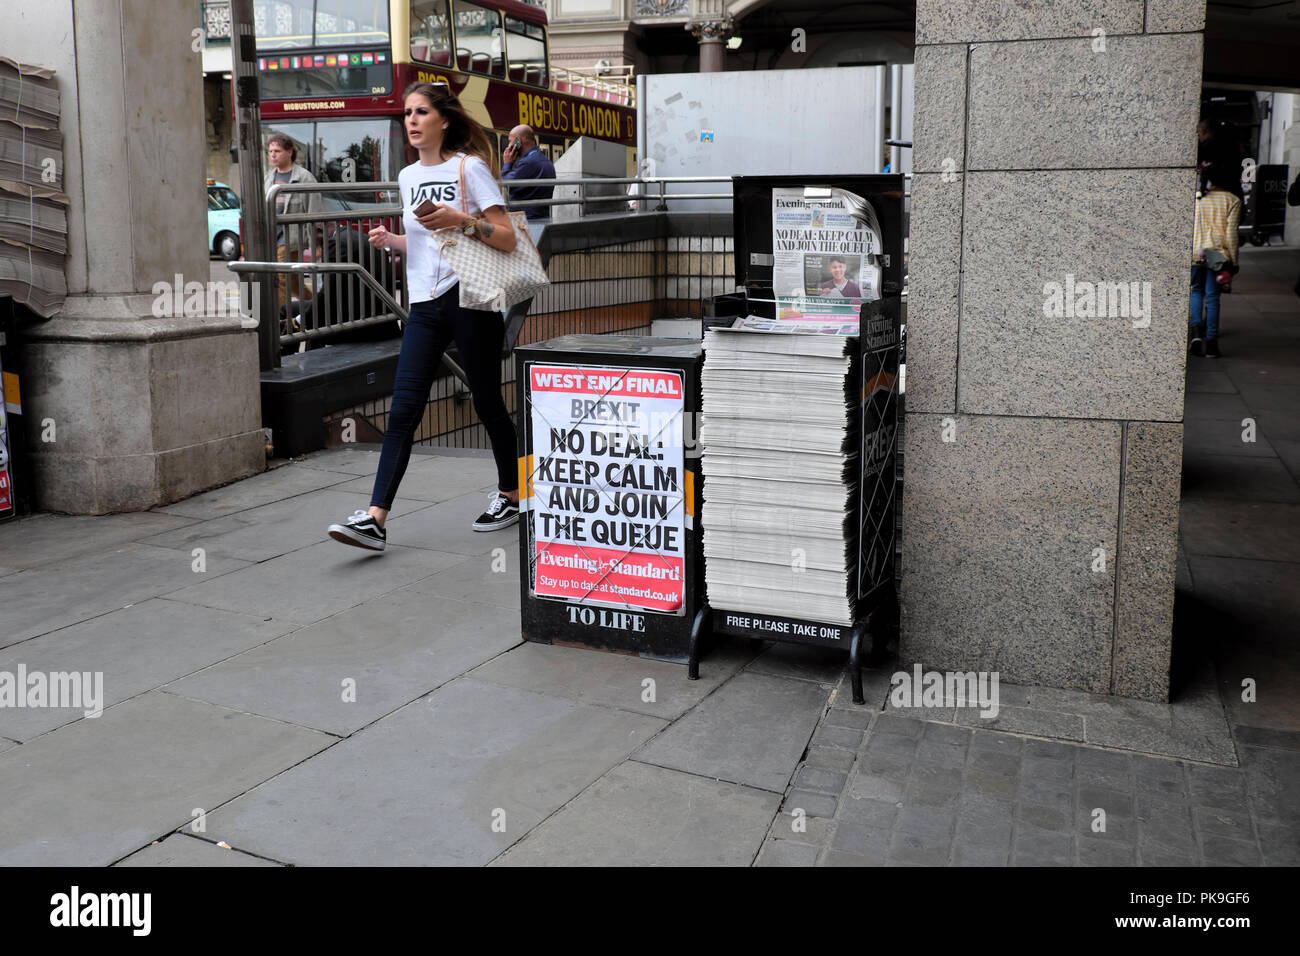 Evening Standard newspaper headlines on newsstand poster 'Brexit - NO DEAL KEEP CALM AND JOIN THE QUEUE'   23 August 2018 in London, England UK - Stock Image